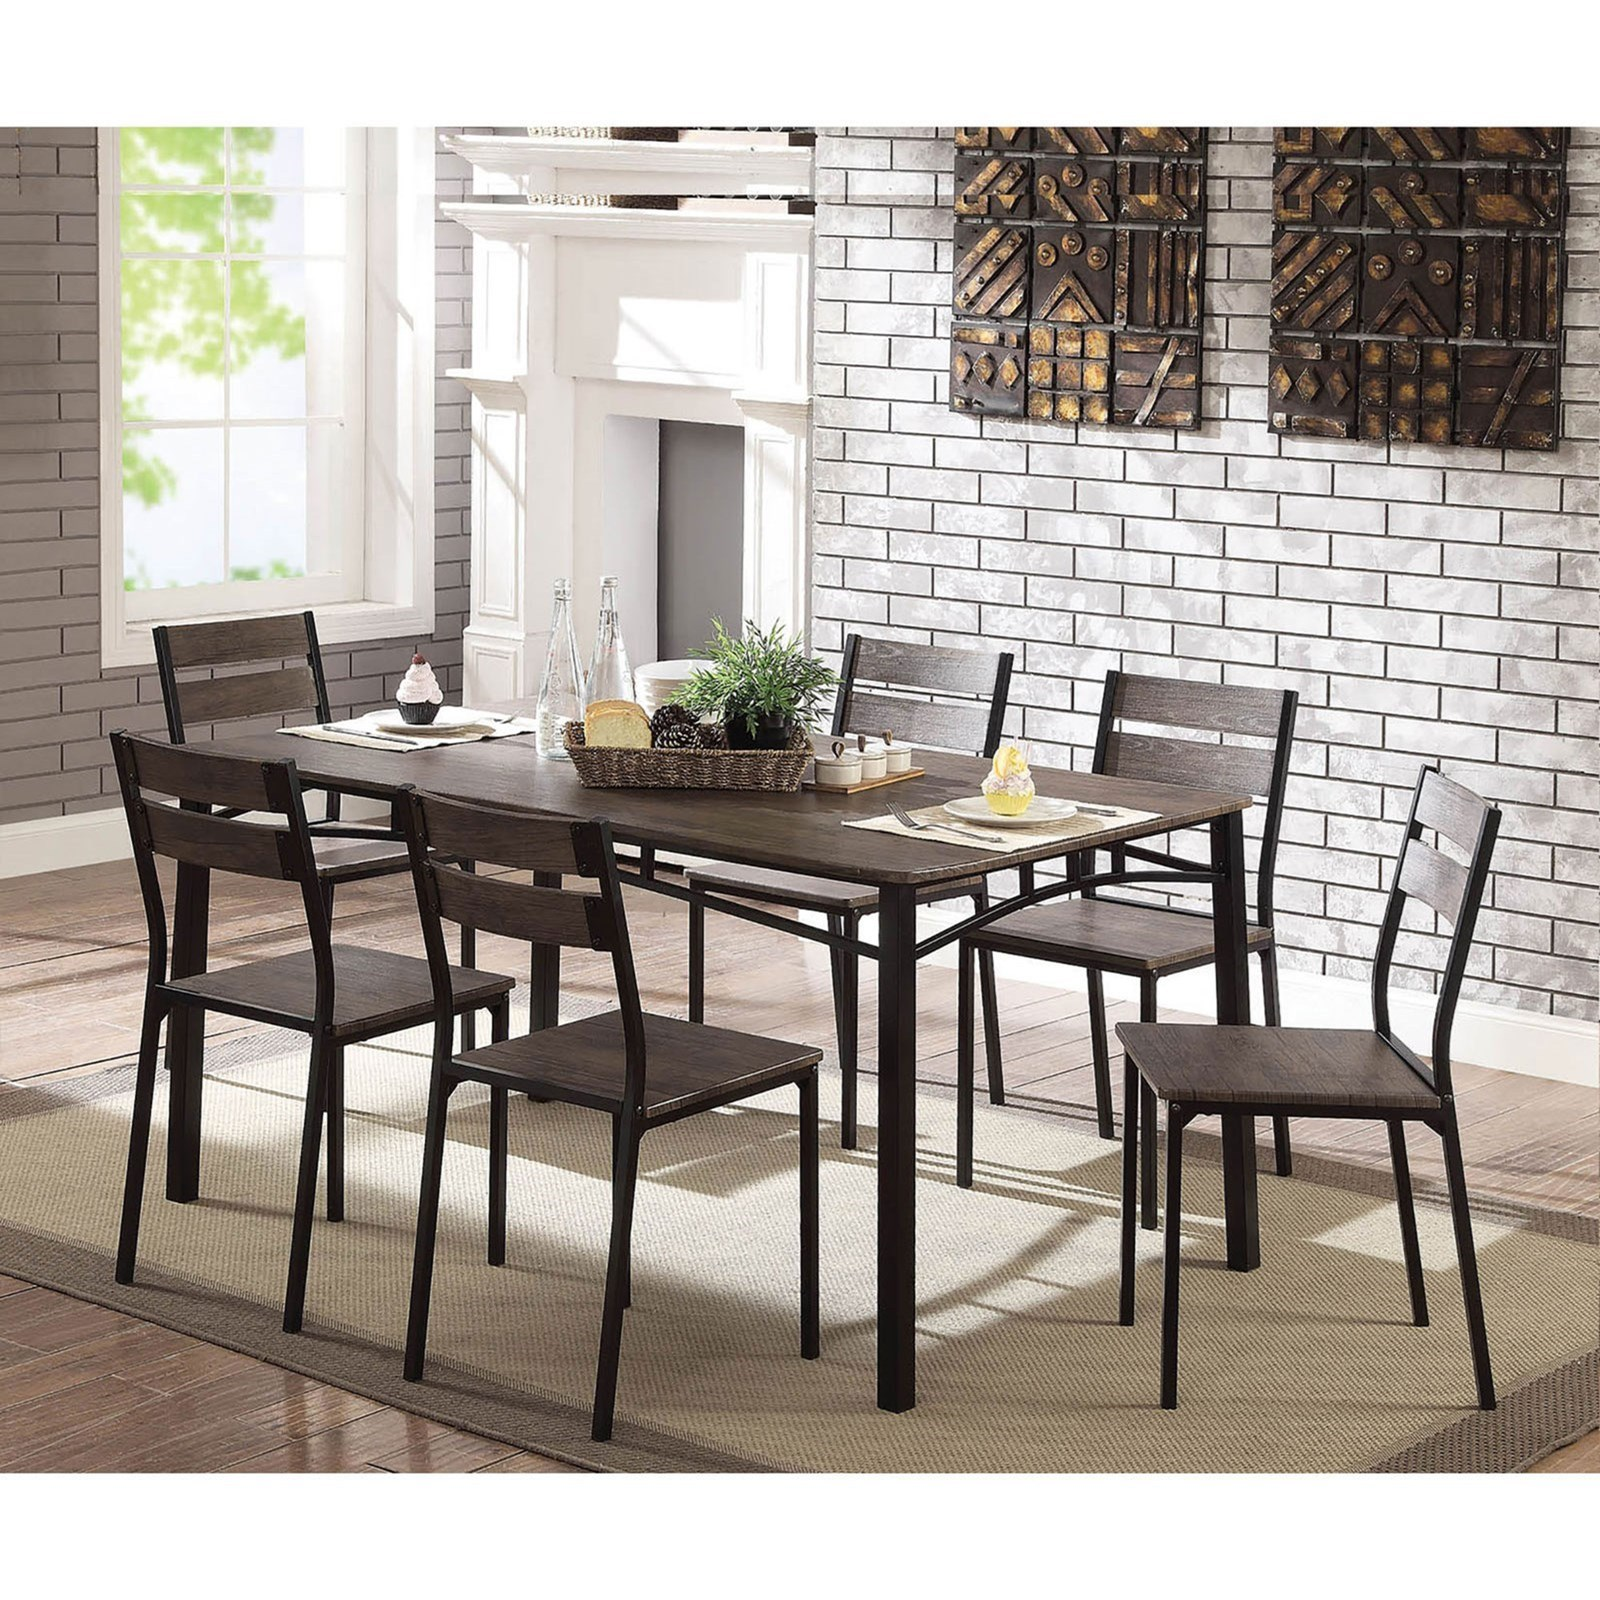 Levitz Furniture Outlet: Furniture Of America Westport CM3920T-7PK Contemporary 7